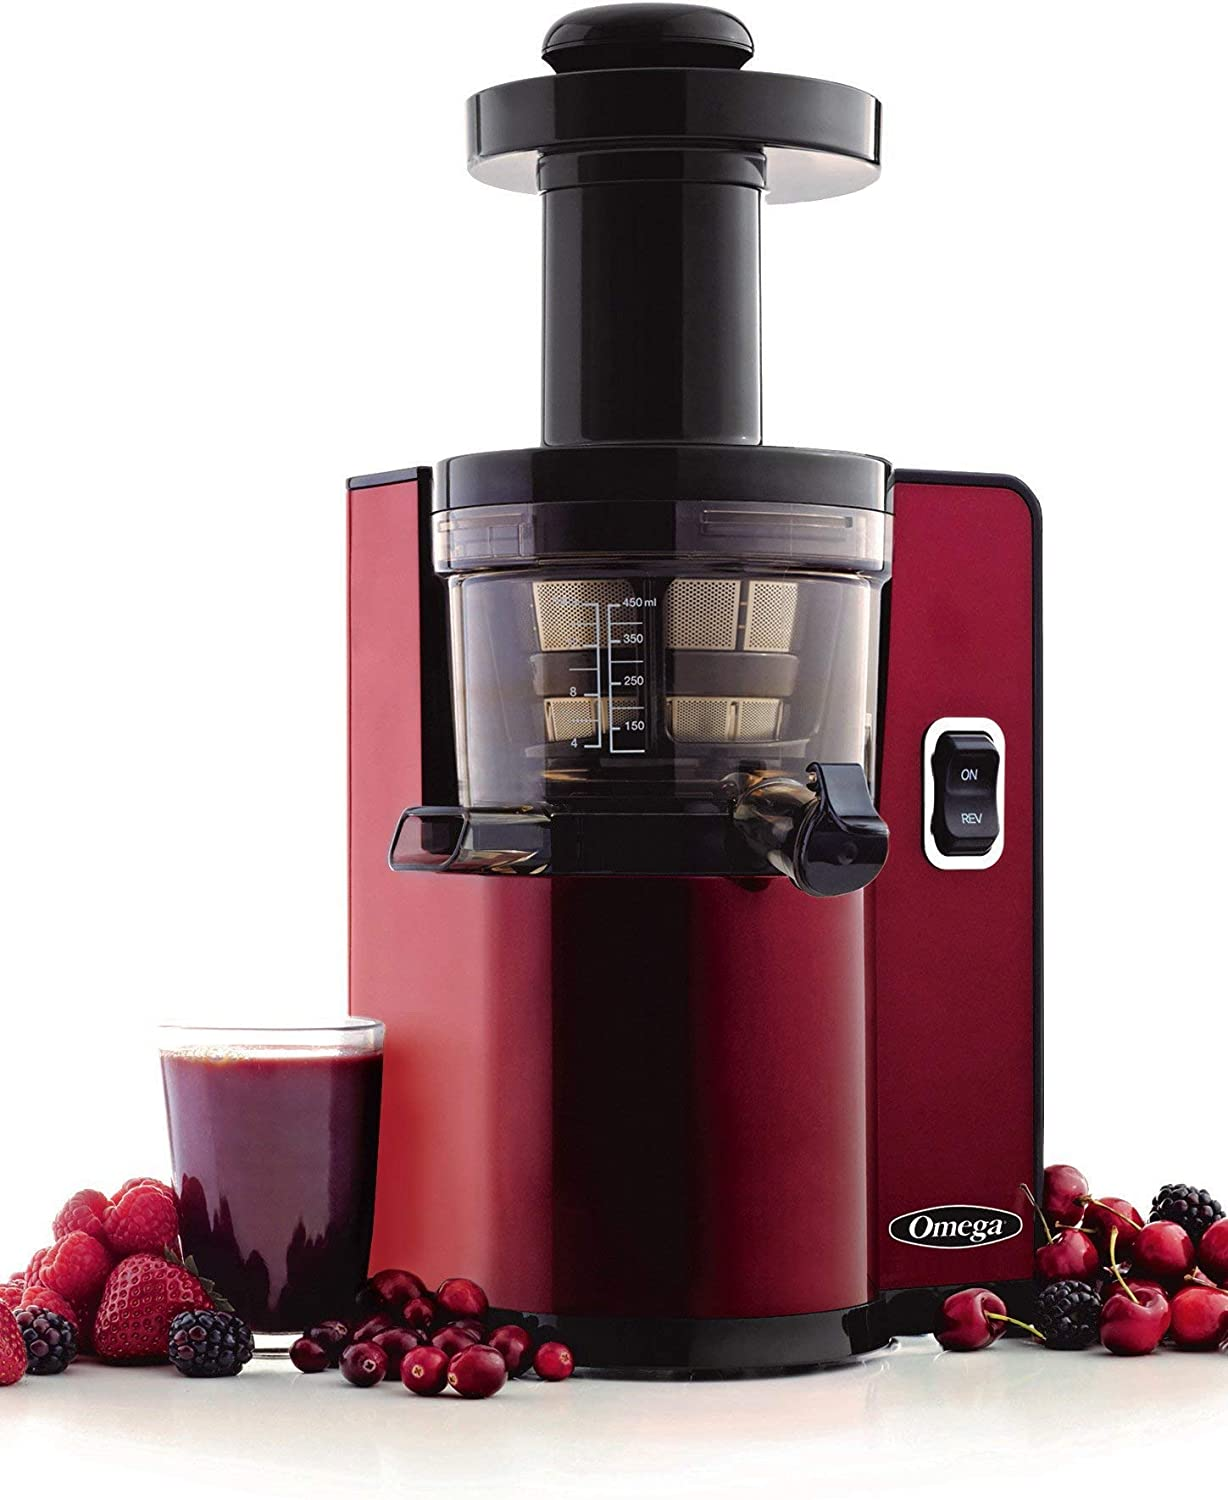 Omega VSJ843QR Vertical Slow Masticating Juicer Makes Continuous Fresh Fruit and Vegetable Juice at 43 Revolutions per Minute Features Compact Design Automatic Pulp Ejection, 150-Watt, Red (Renewed)